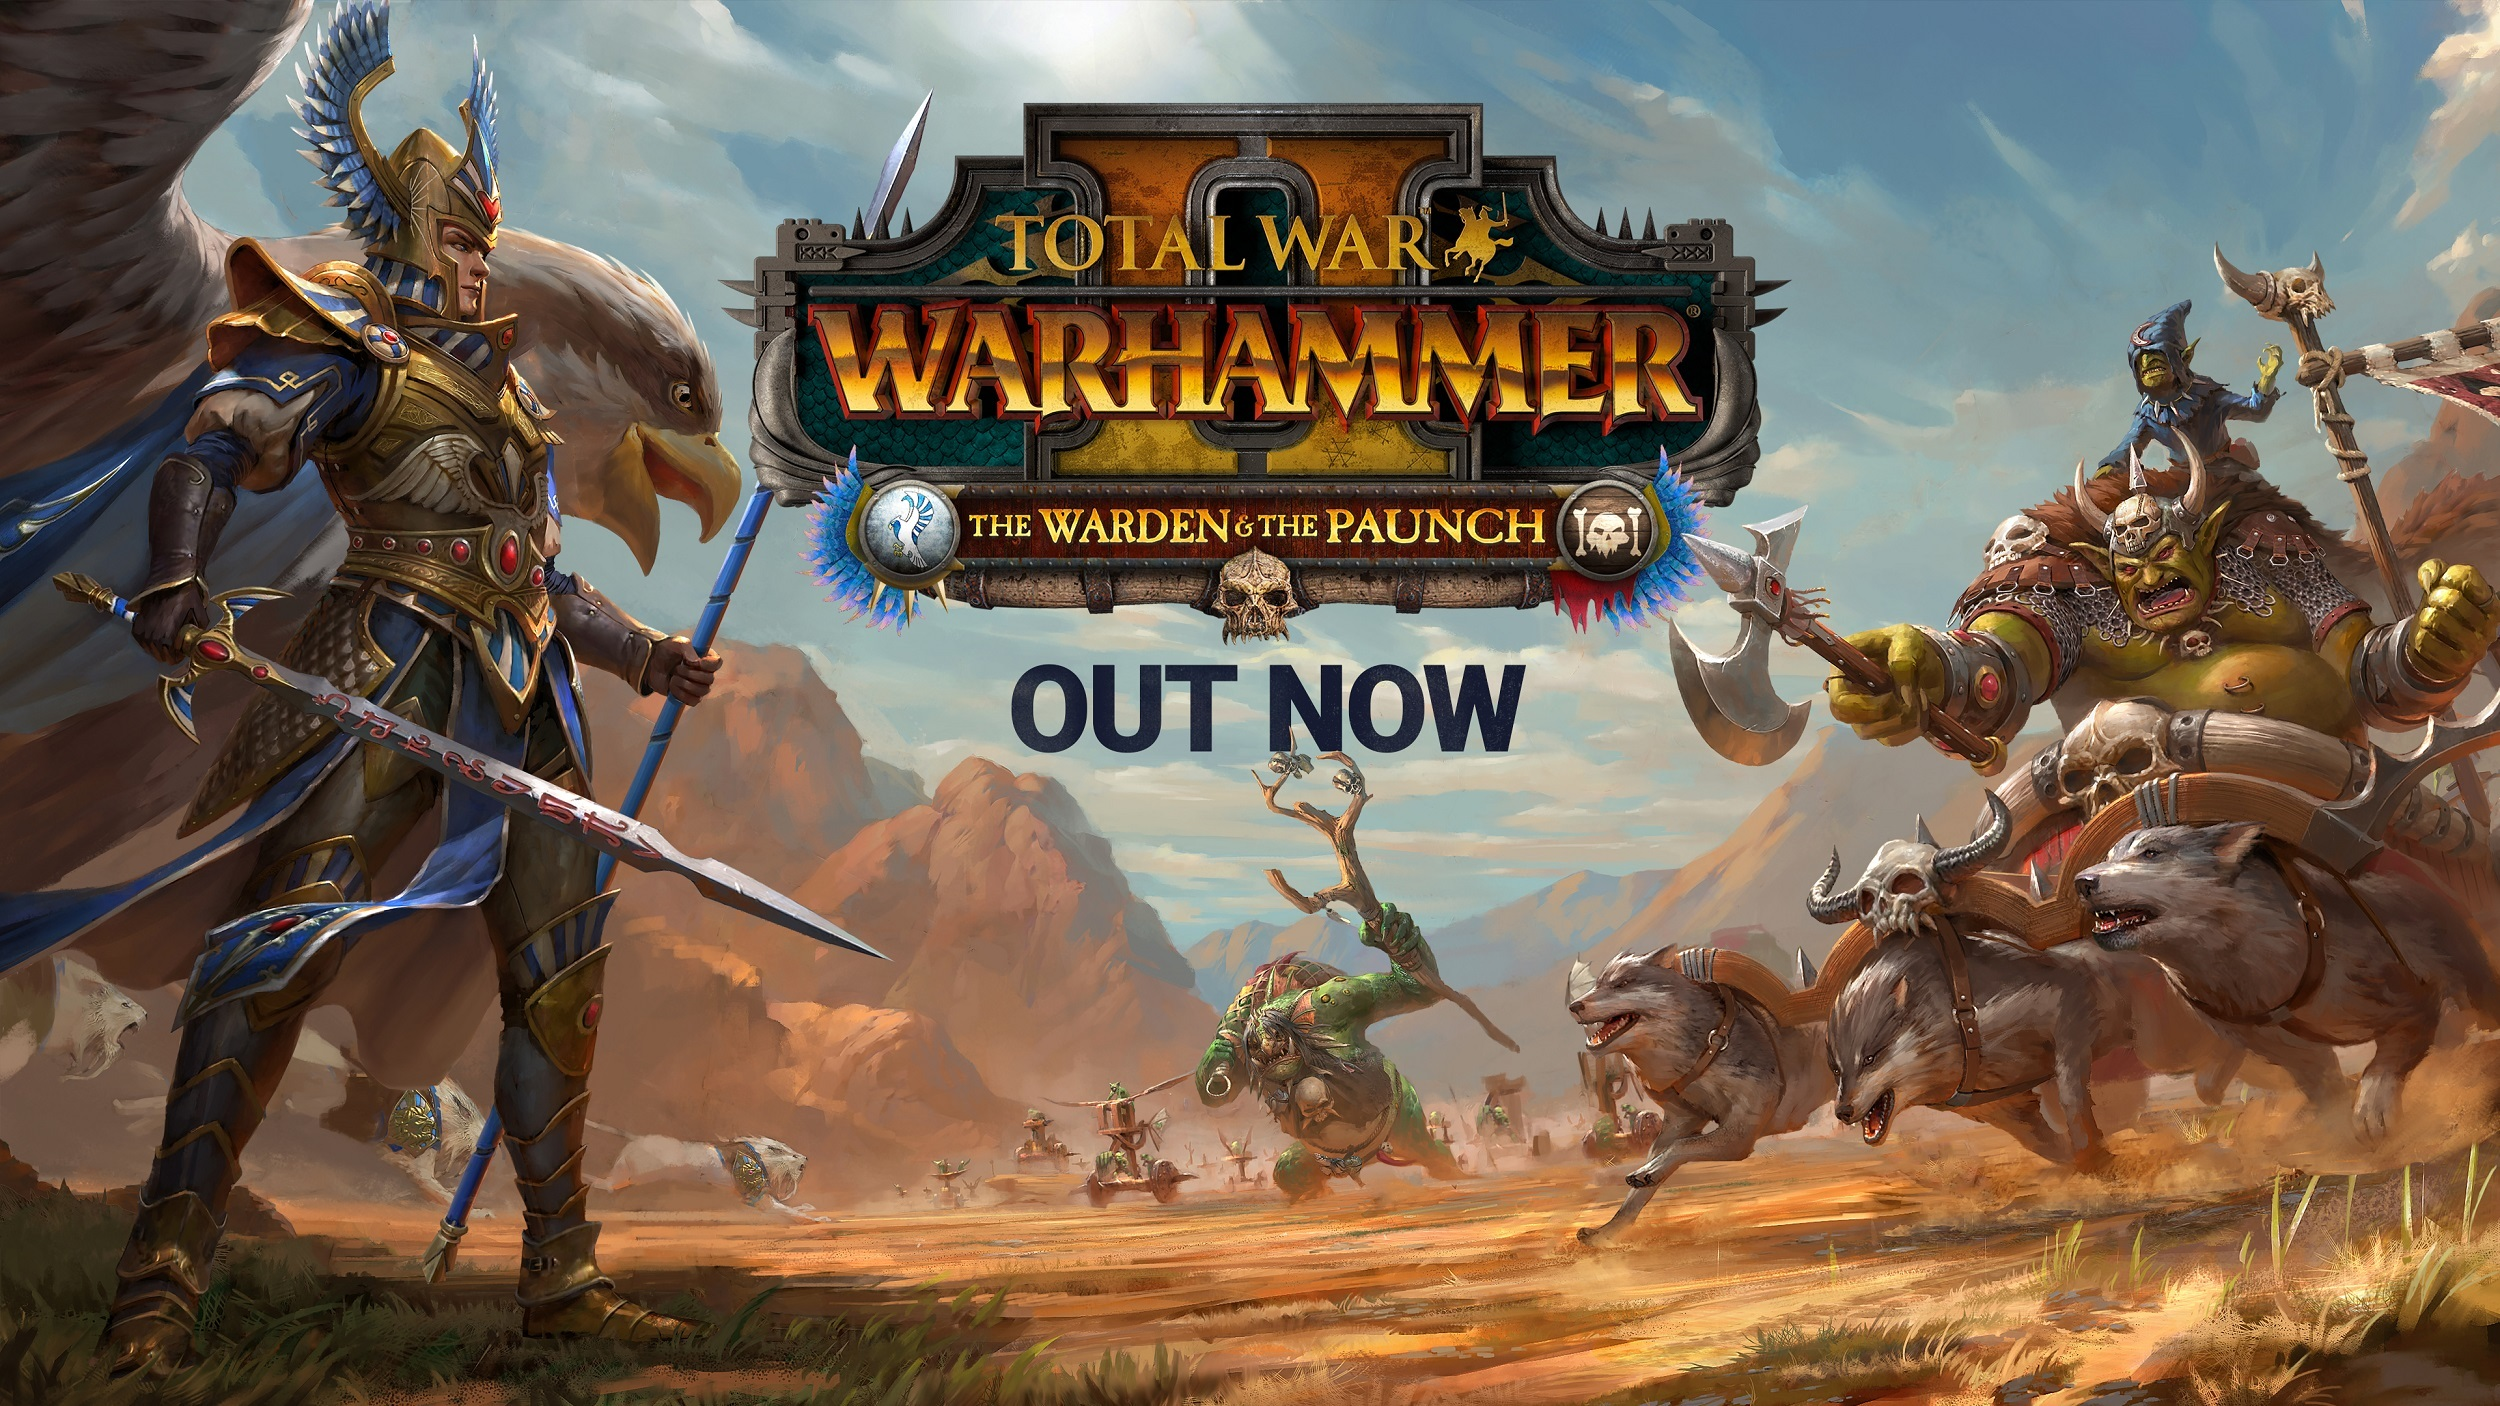 The Warden & The Paunch is out now!